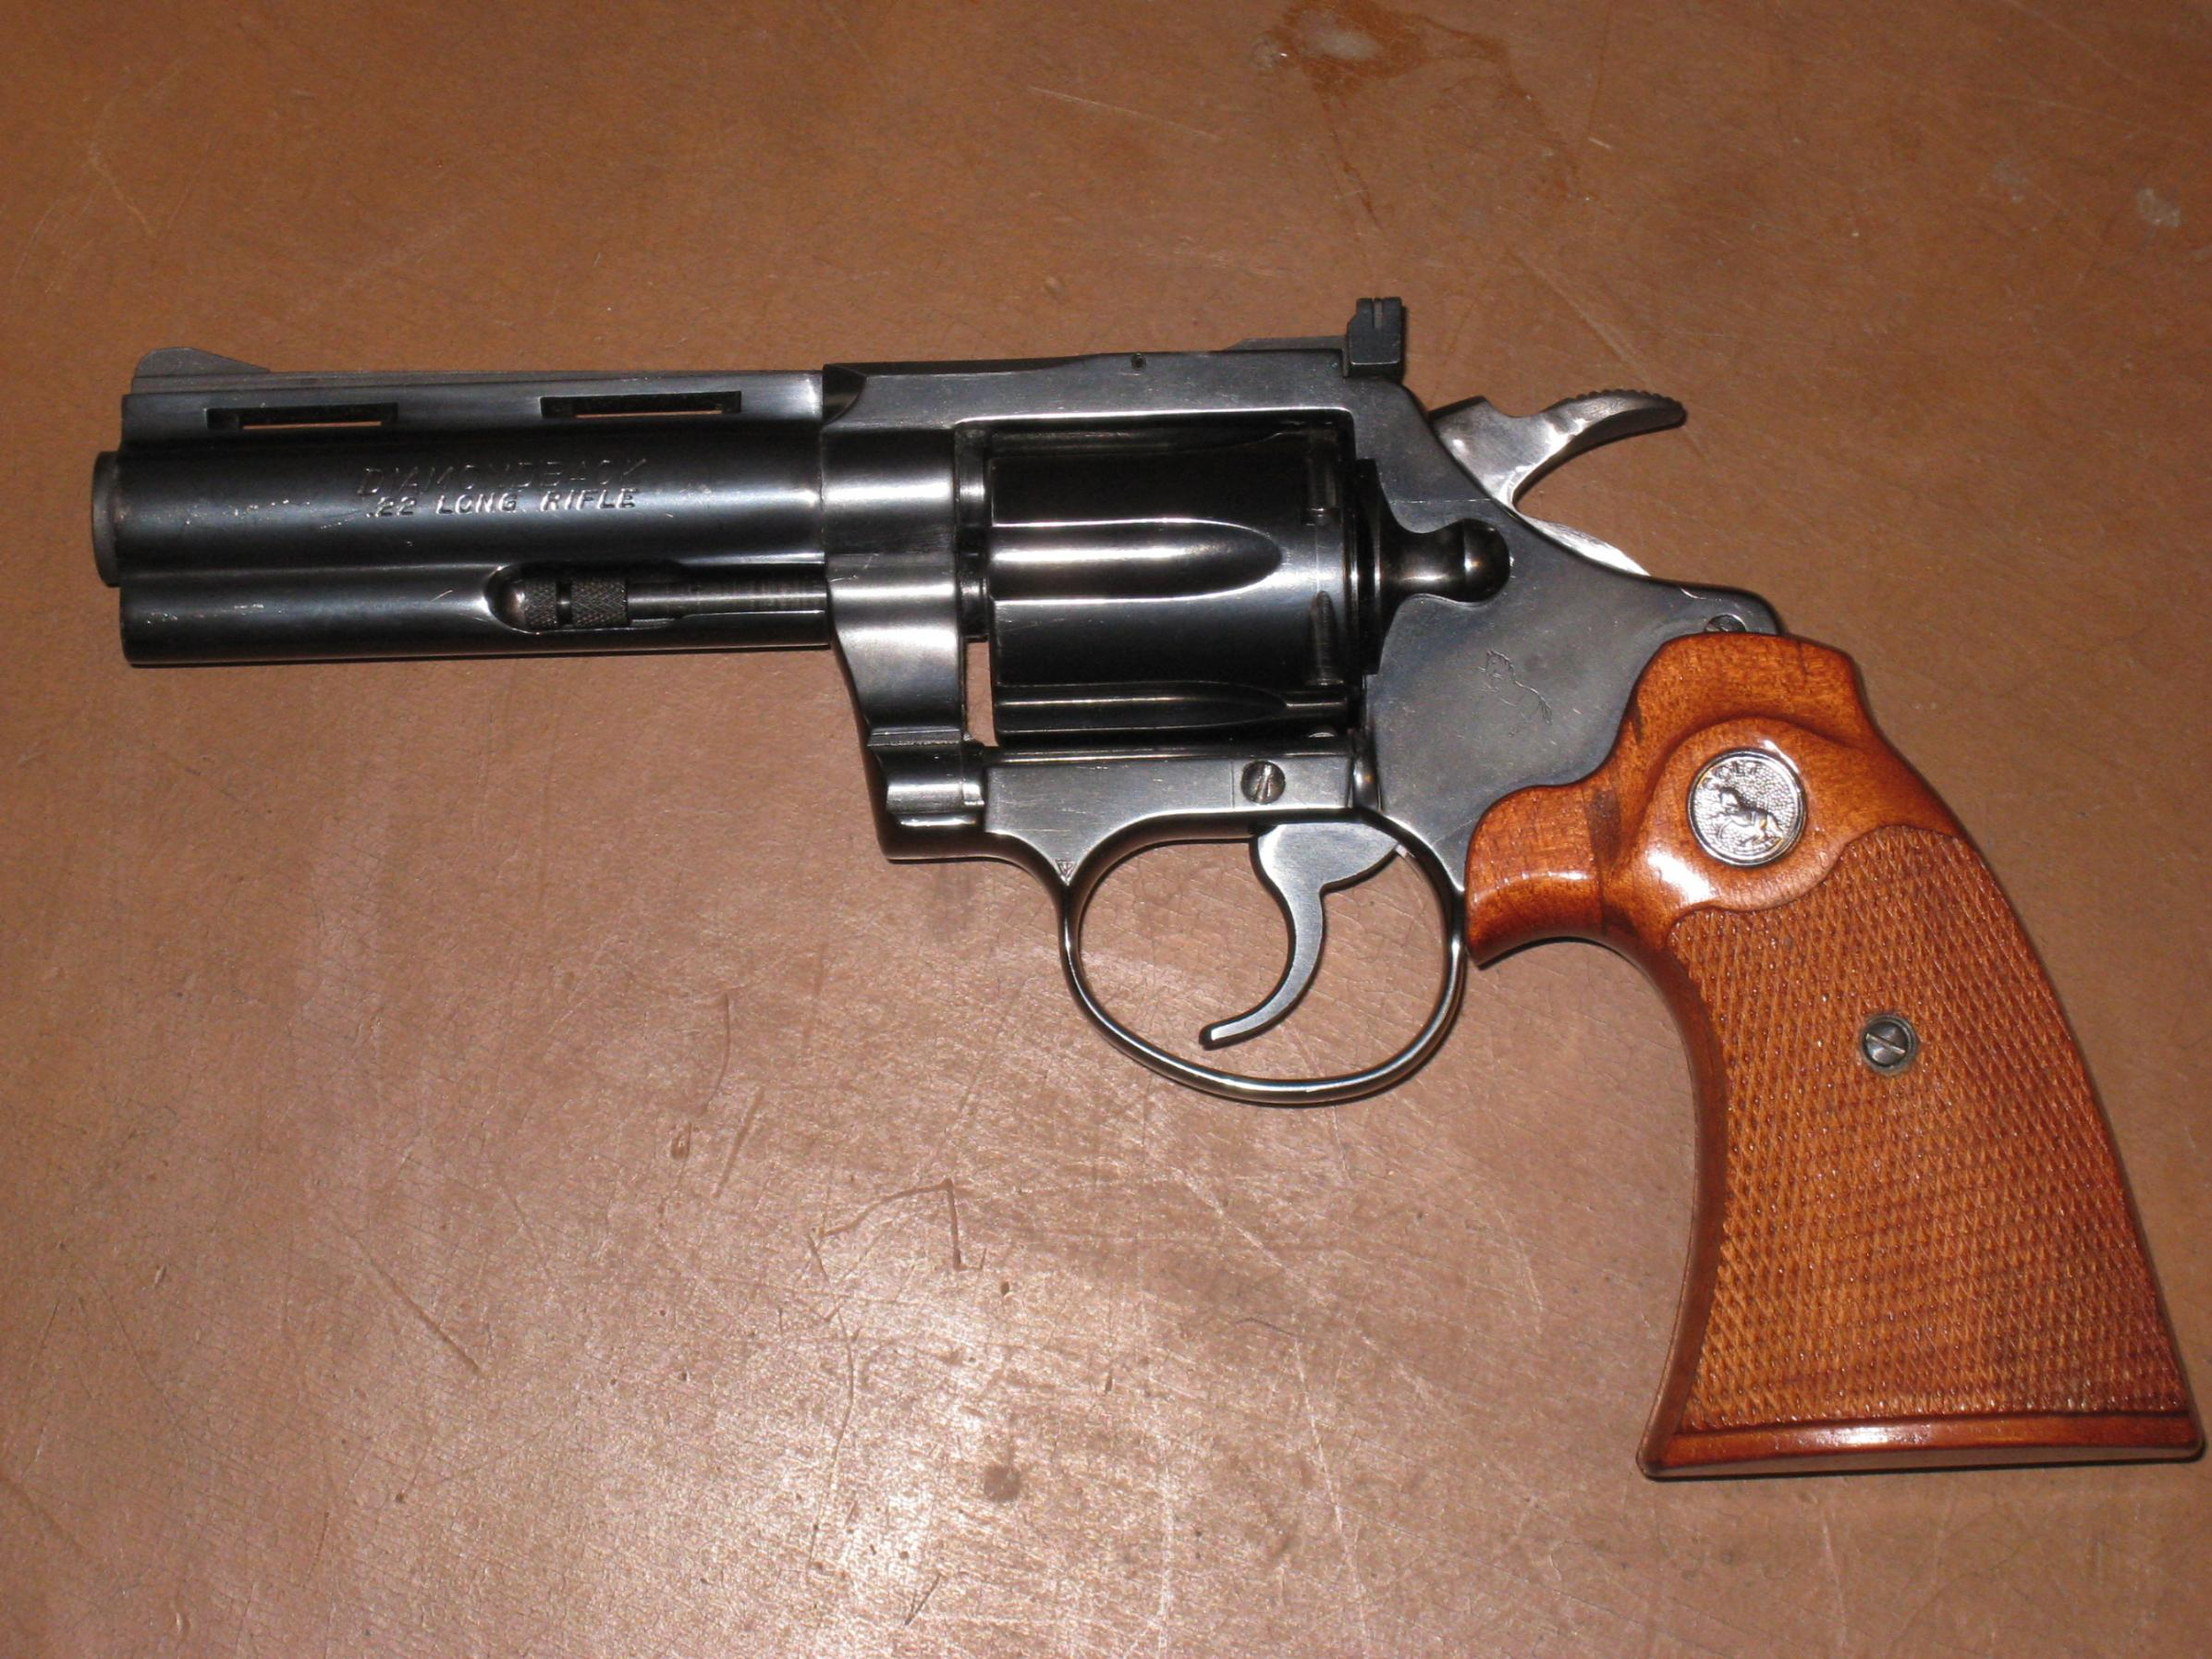 Does Anyone Out There Take Colt Revolvers Seriously?-picture-014.jpg